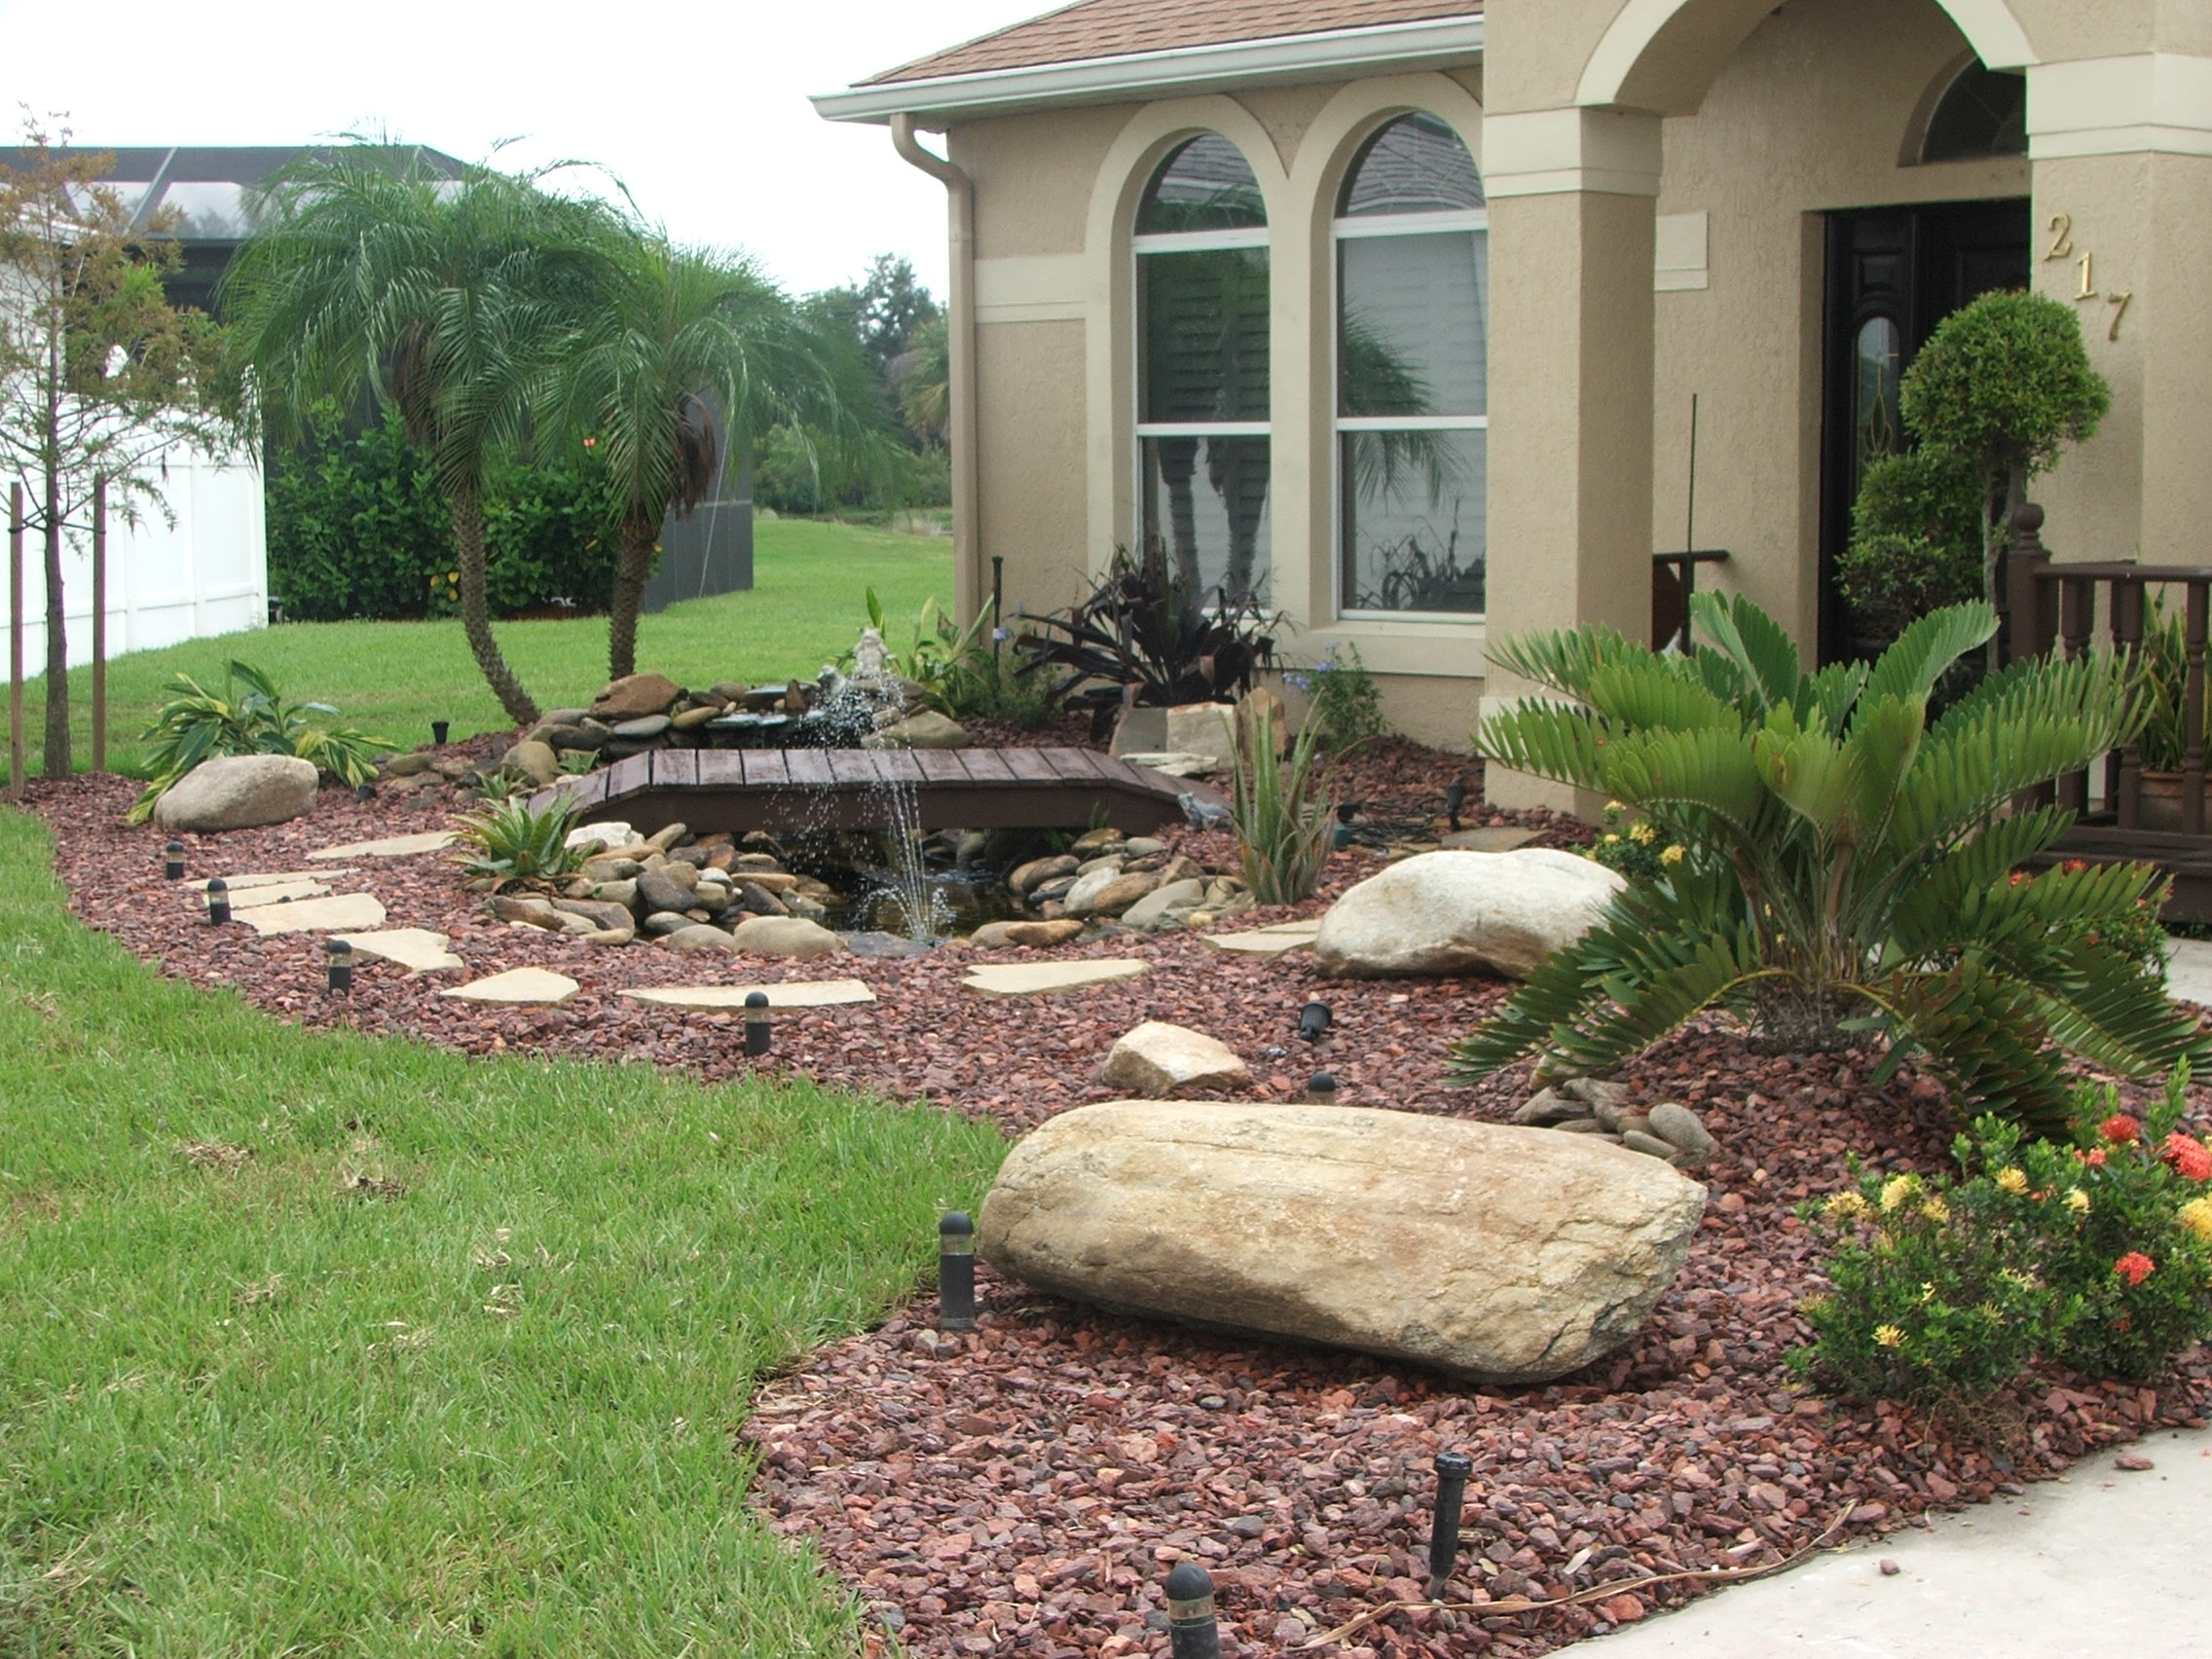 Natural large rocks for landscaping homesfeed for Landscaping rocks